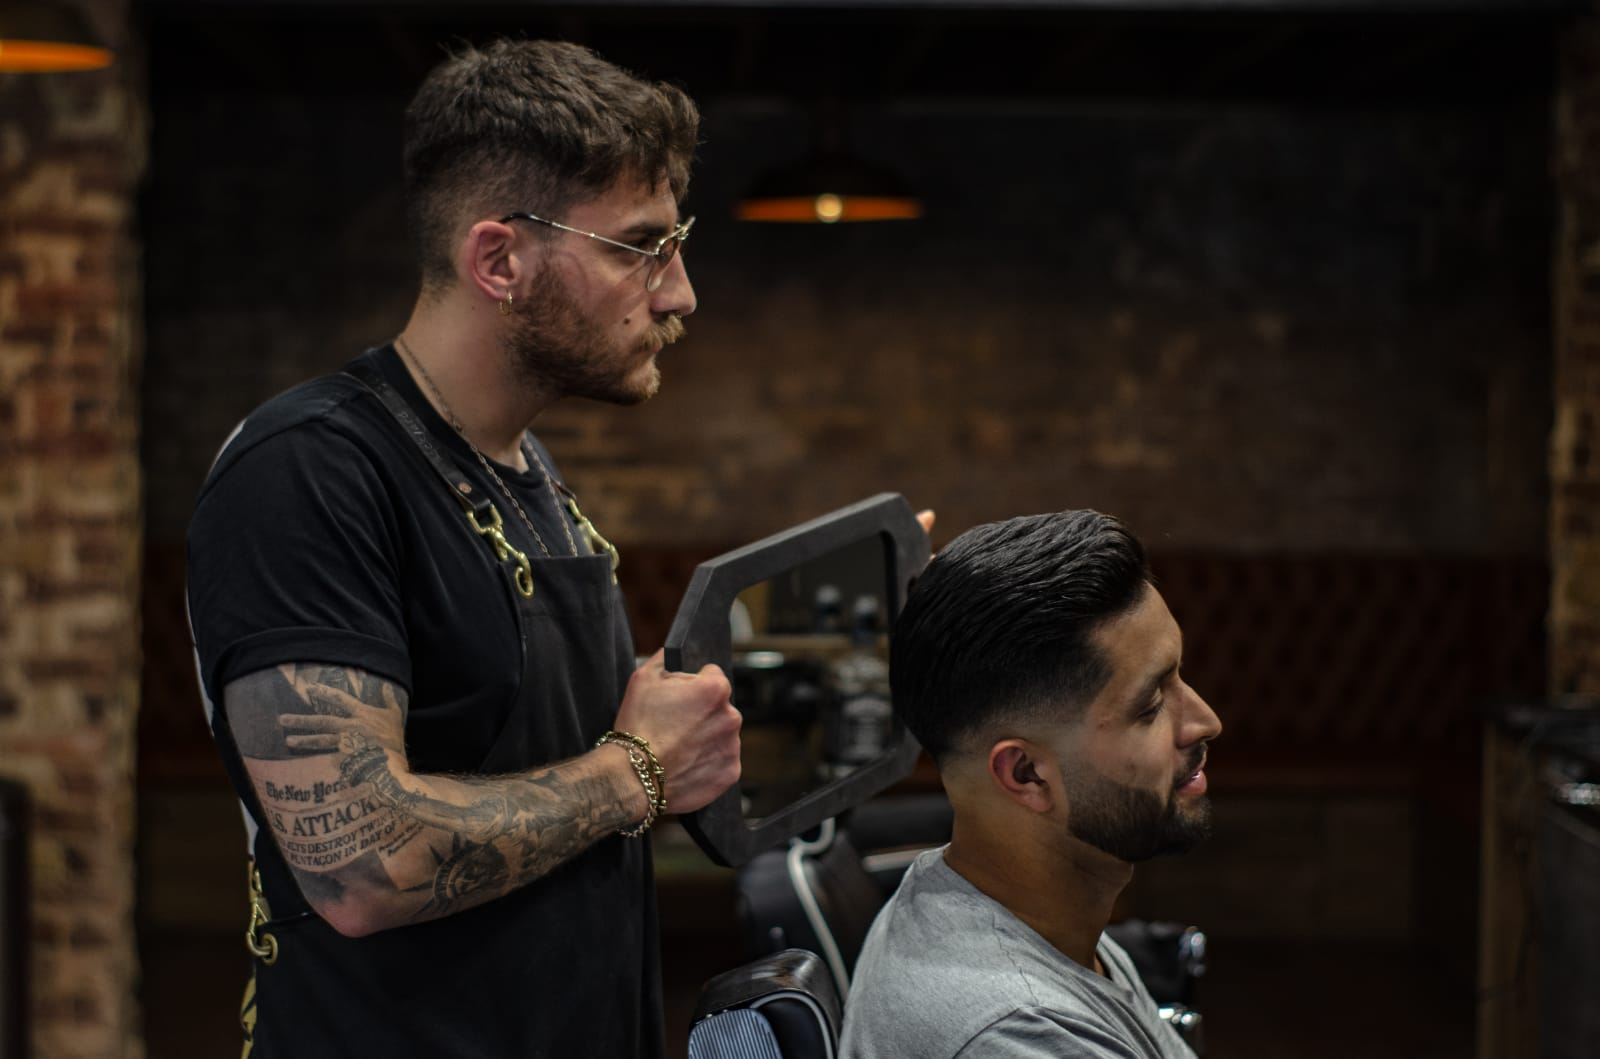 Warren Street Barbers